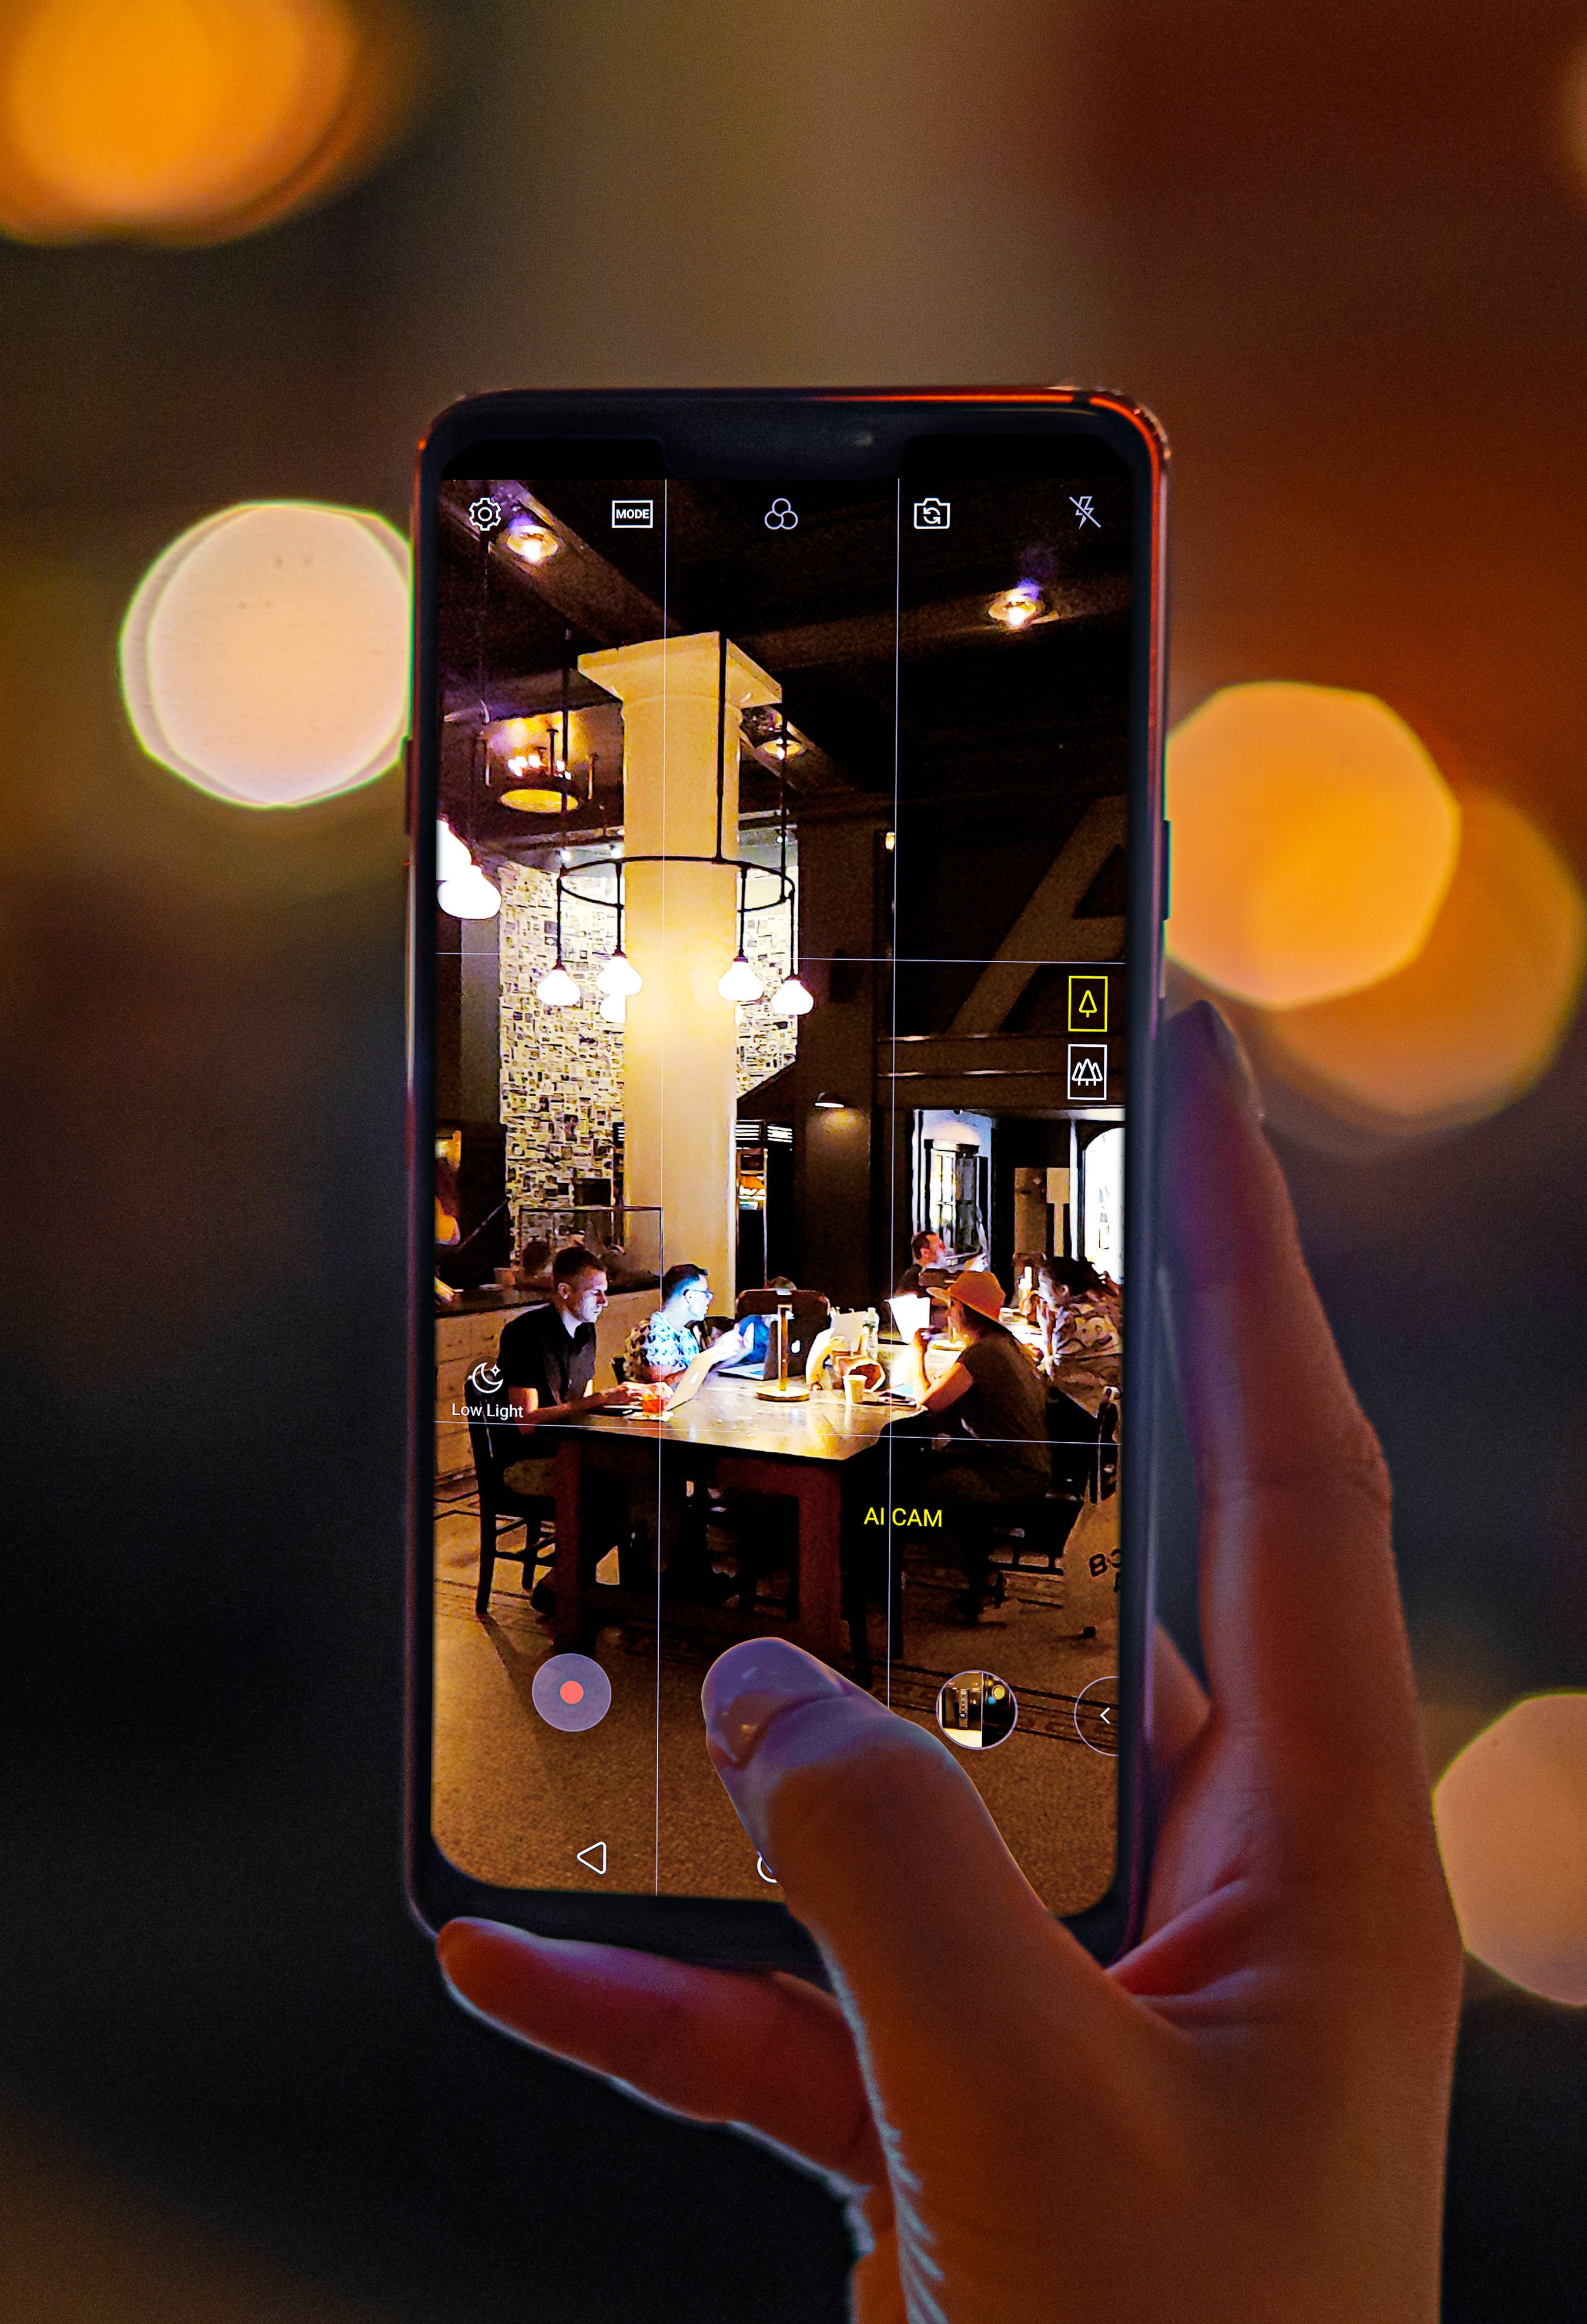 A person taking a photo of a dark cafe with AI CAM on the LG G7 ThinQ